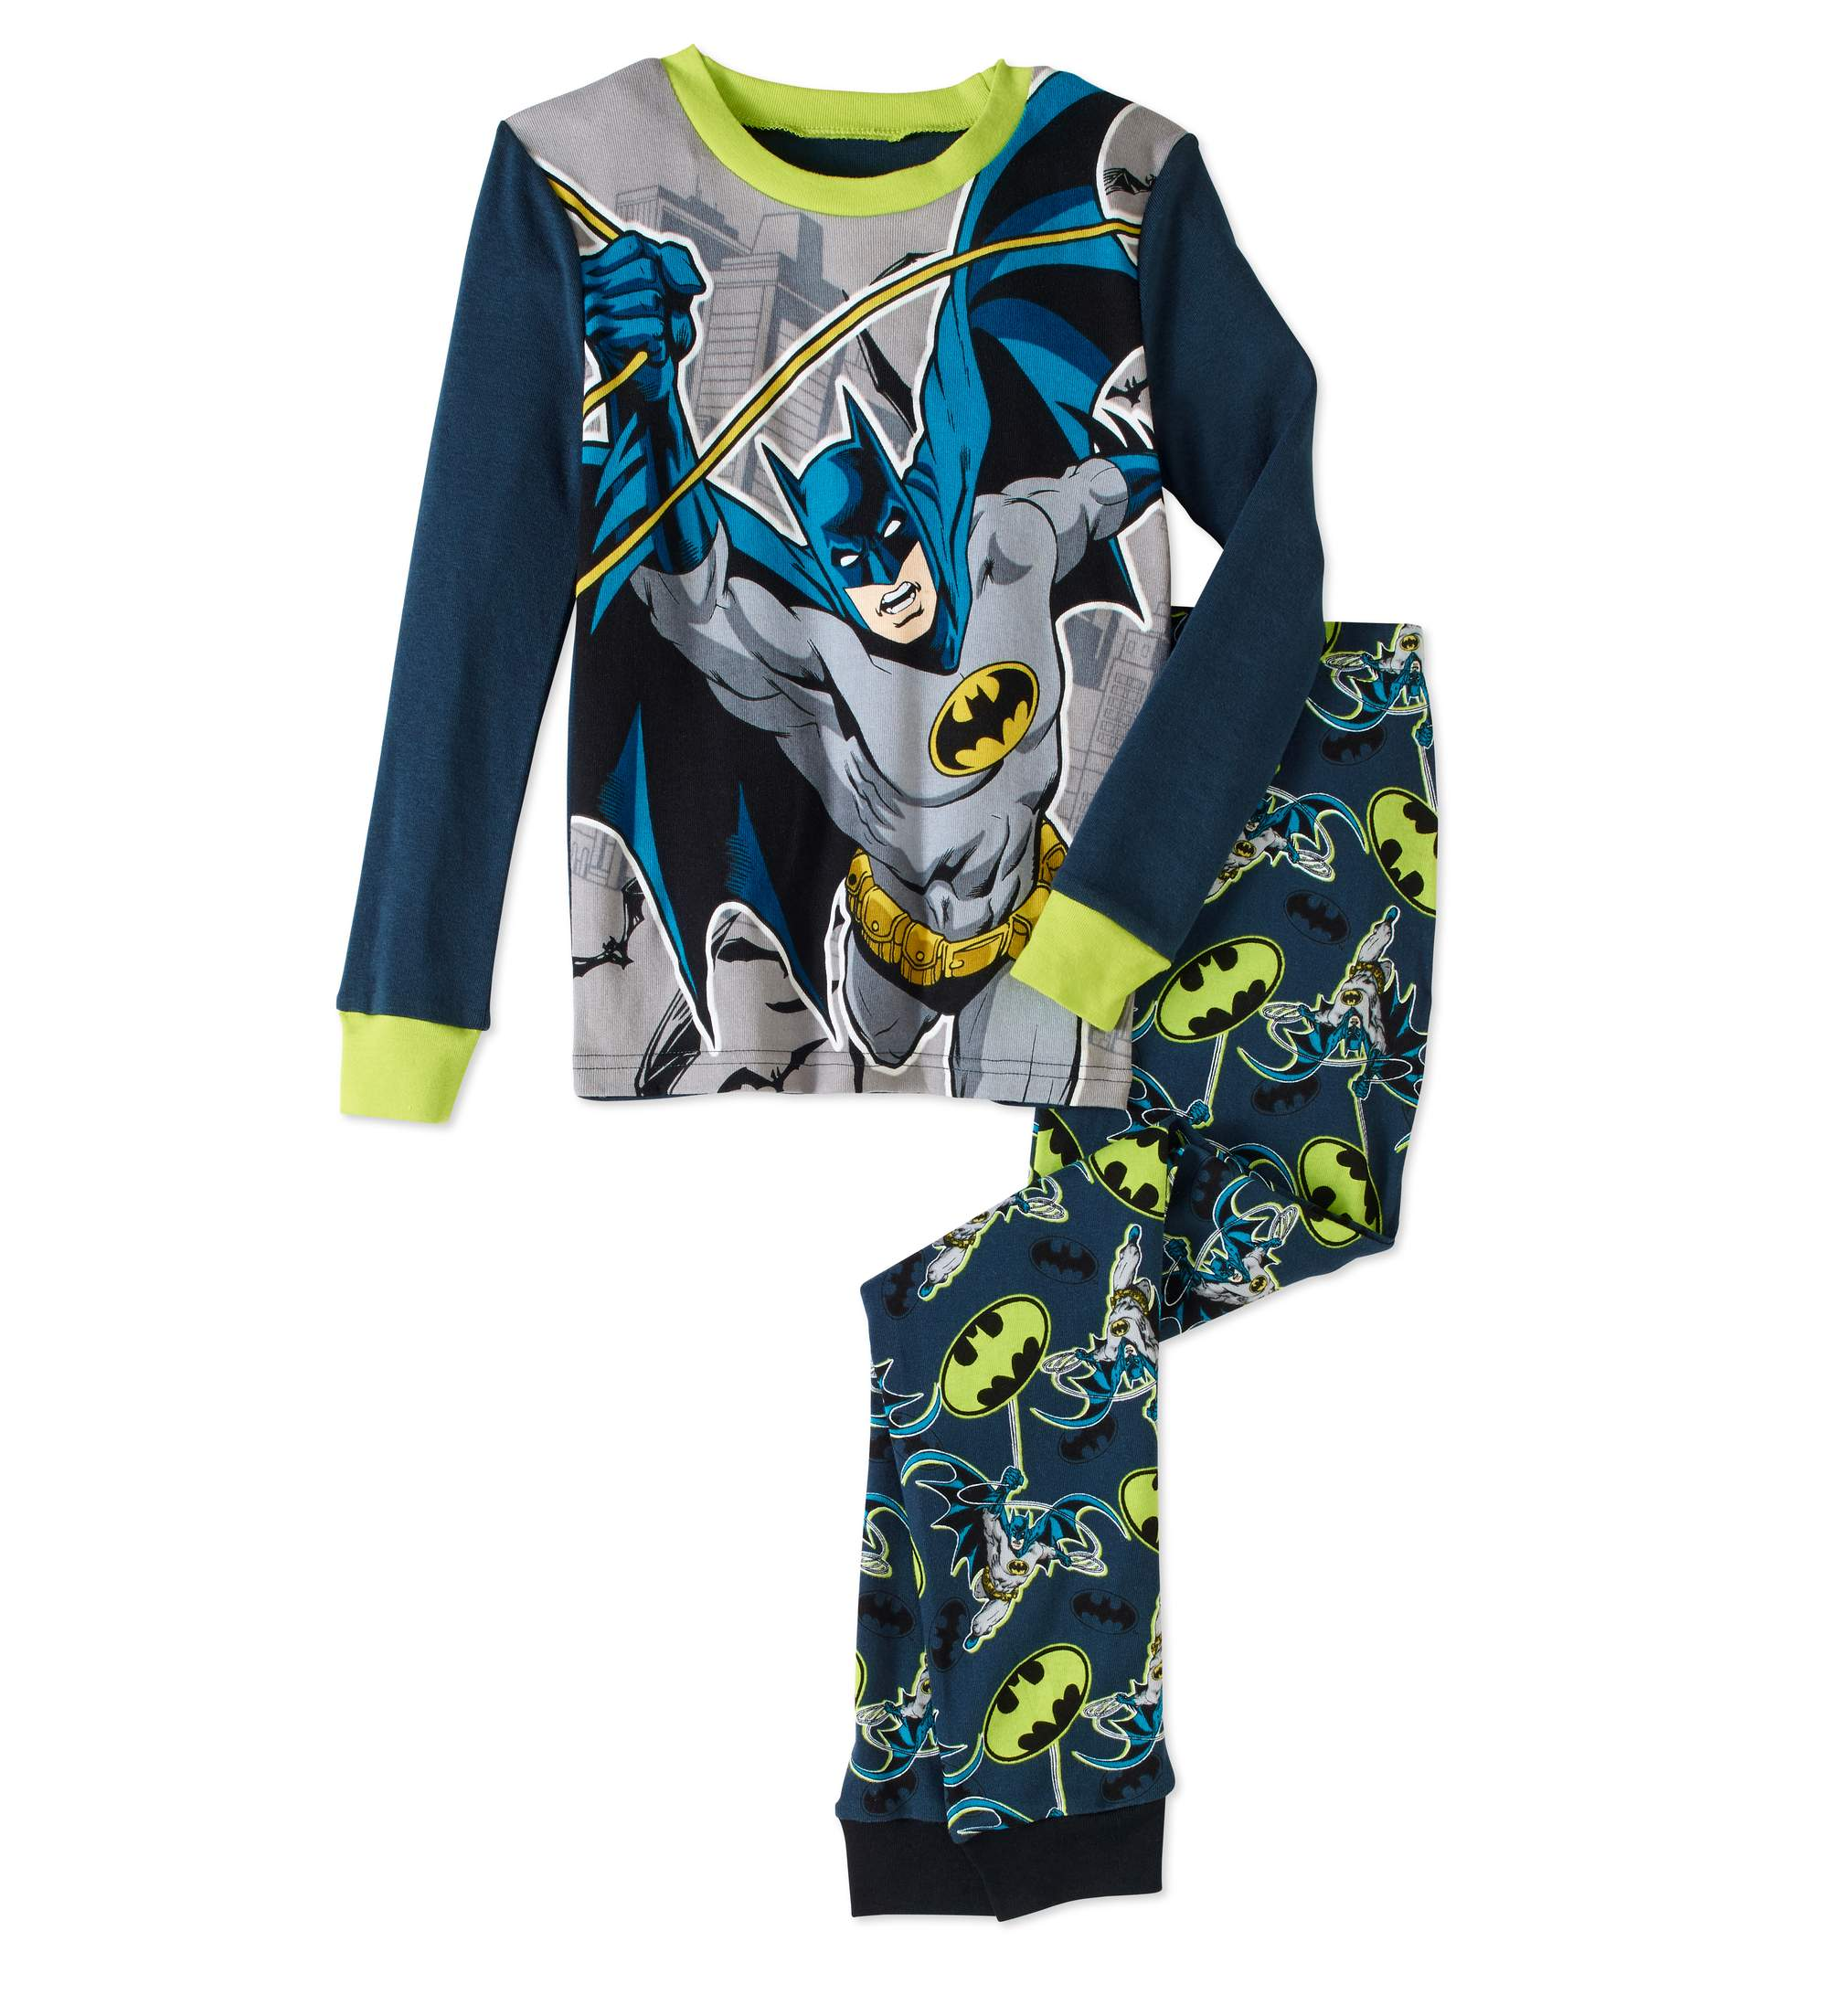 Batman Boys' Glow in the Dark 2pc Pajama Sleepwear Set by